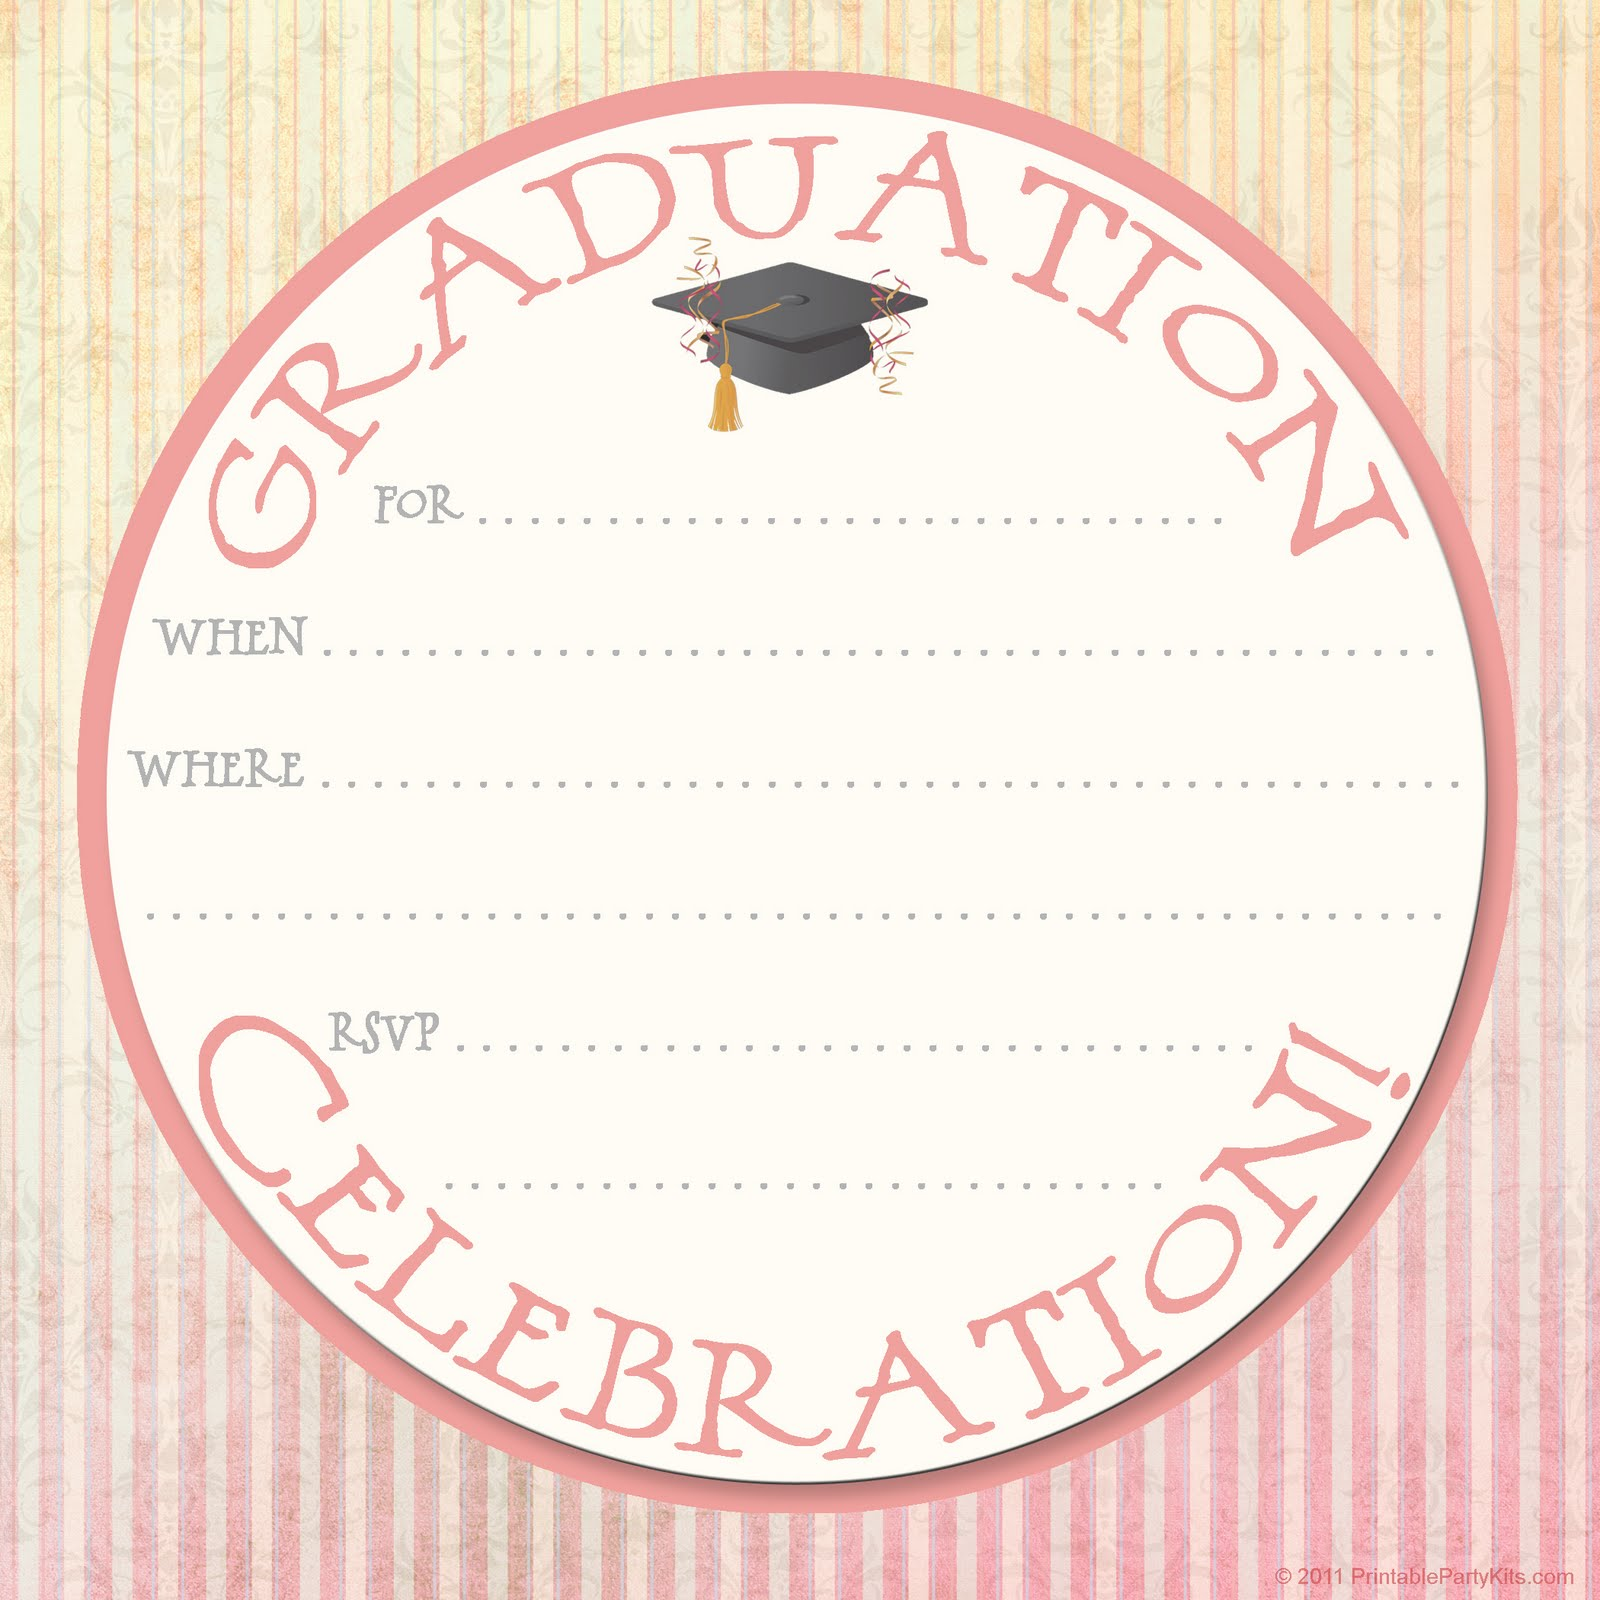 Elegant Graduation Party Invitations with best invitation layout